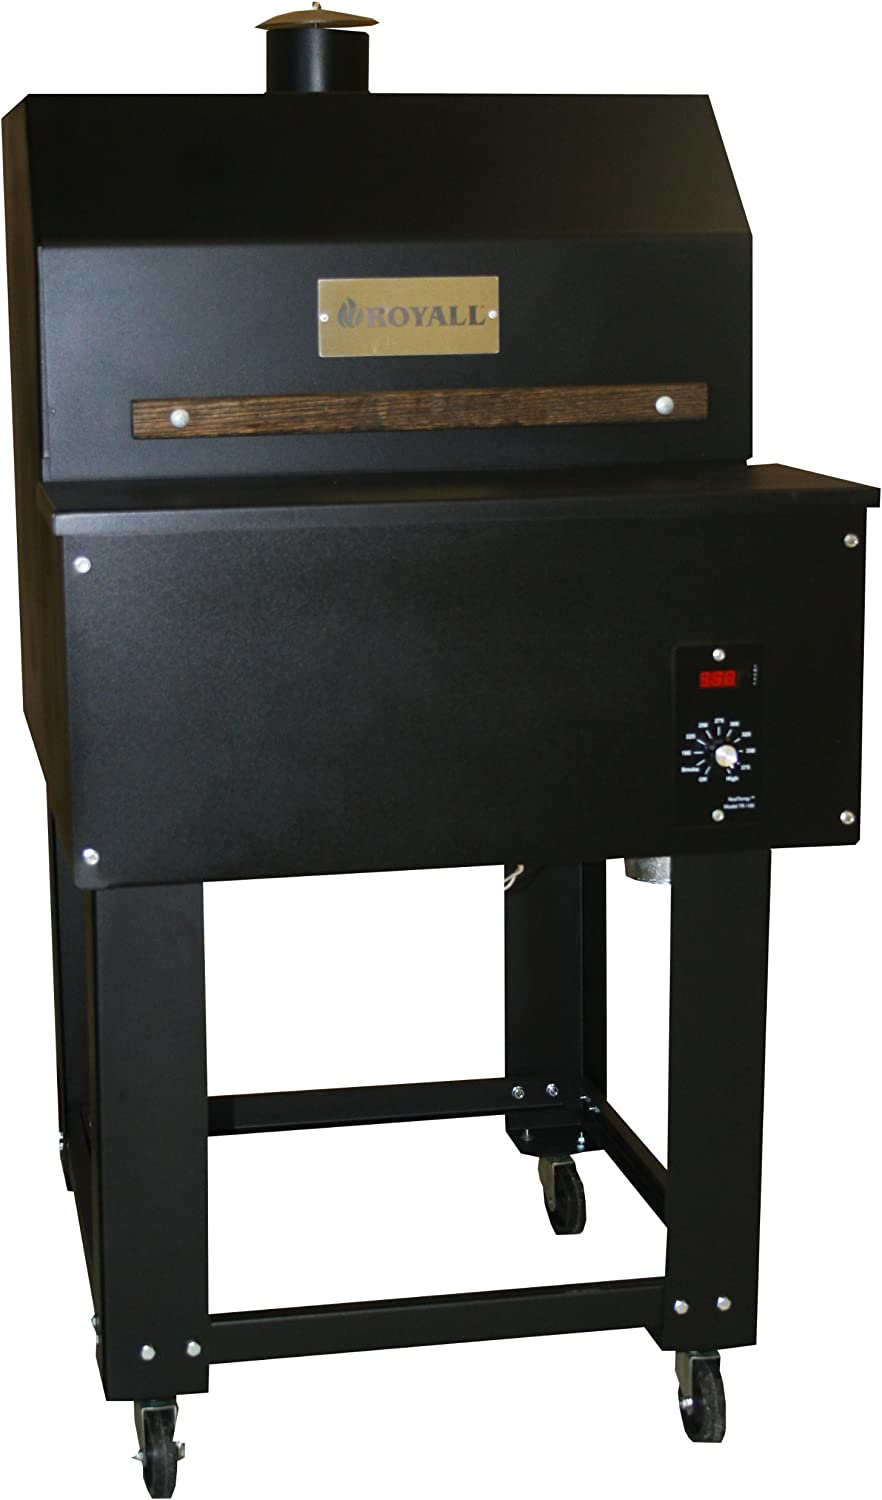 Royall Grills RGPRO Wood Courier shipping free Max 81% OFF Grill Pellet